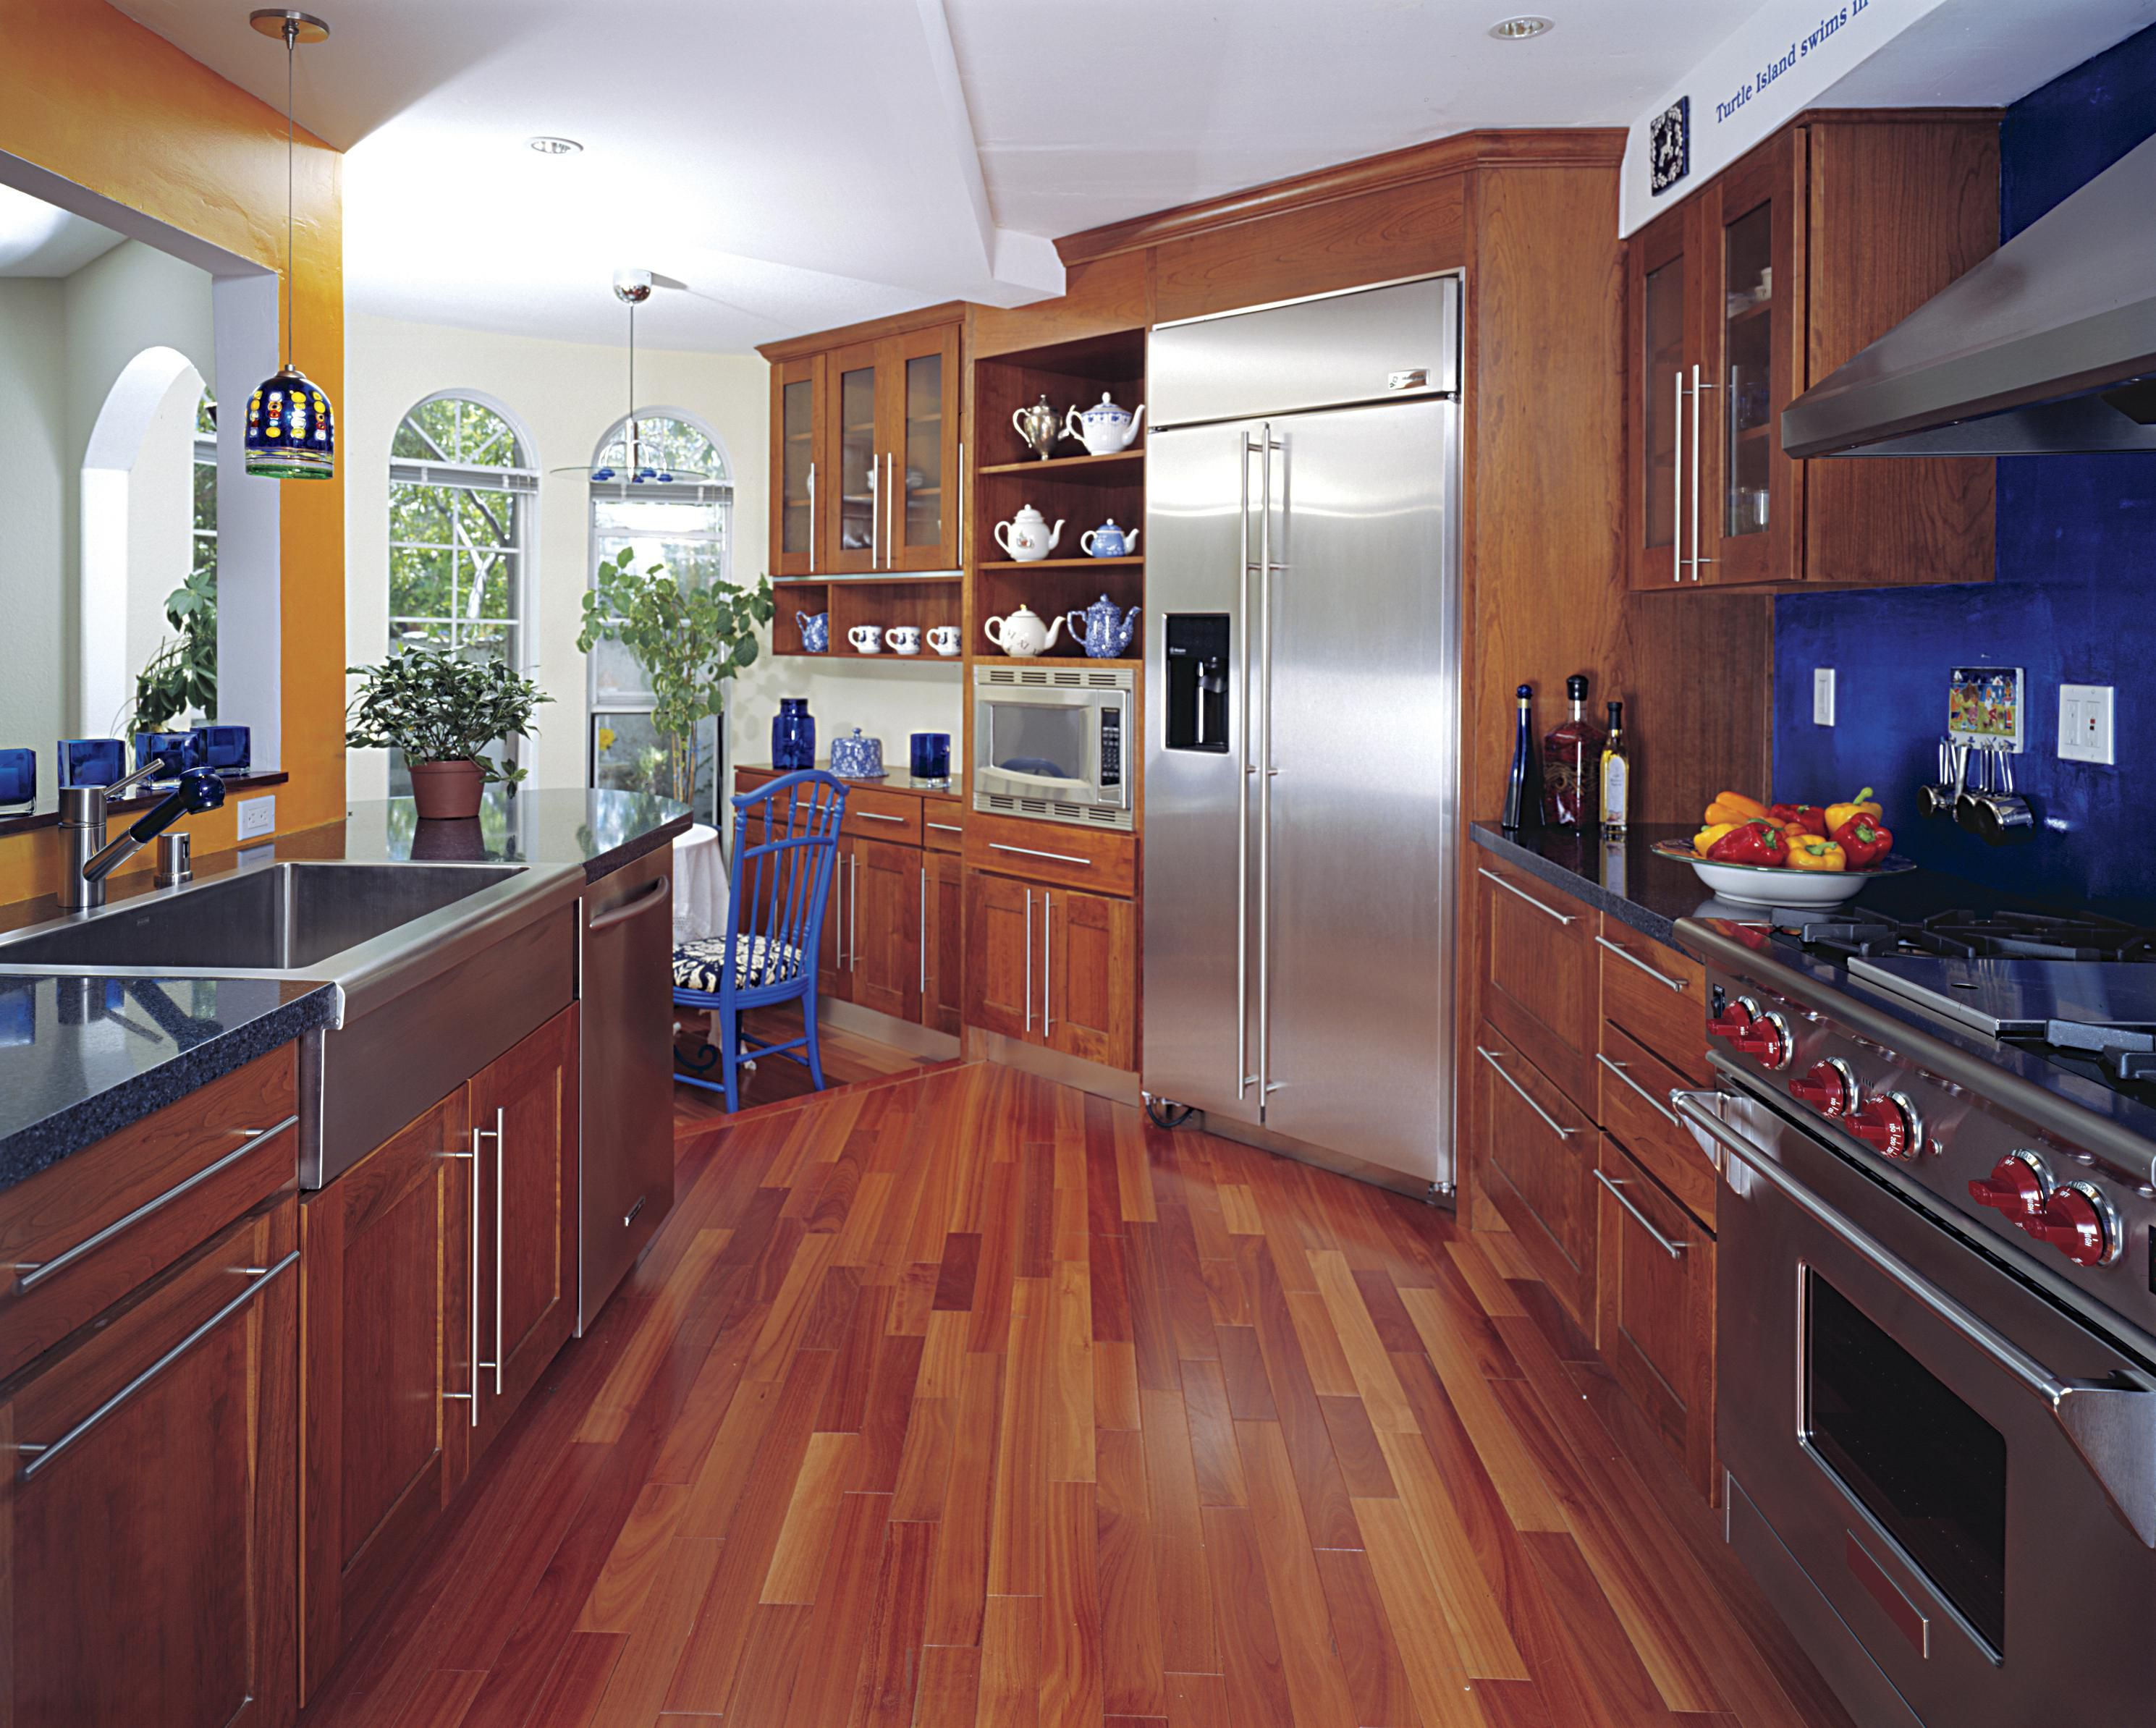 Hardwood Floor In A Kitchen  Is This Allowed?. Chimney In Kitchen Design. Kitchen And Living Room Design. Modern Kitchen Design For Small Space. Kitchen Design Cambridge. Kitchen Design Training. How To Find A Kitchen Designer. Kitchen Designs For Small Houses. Kitchen Design Standards